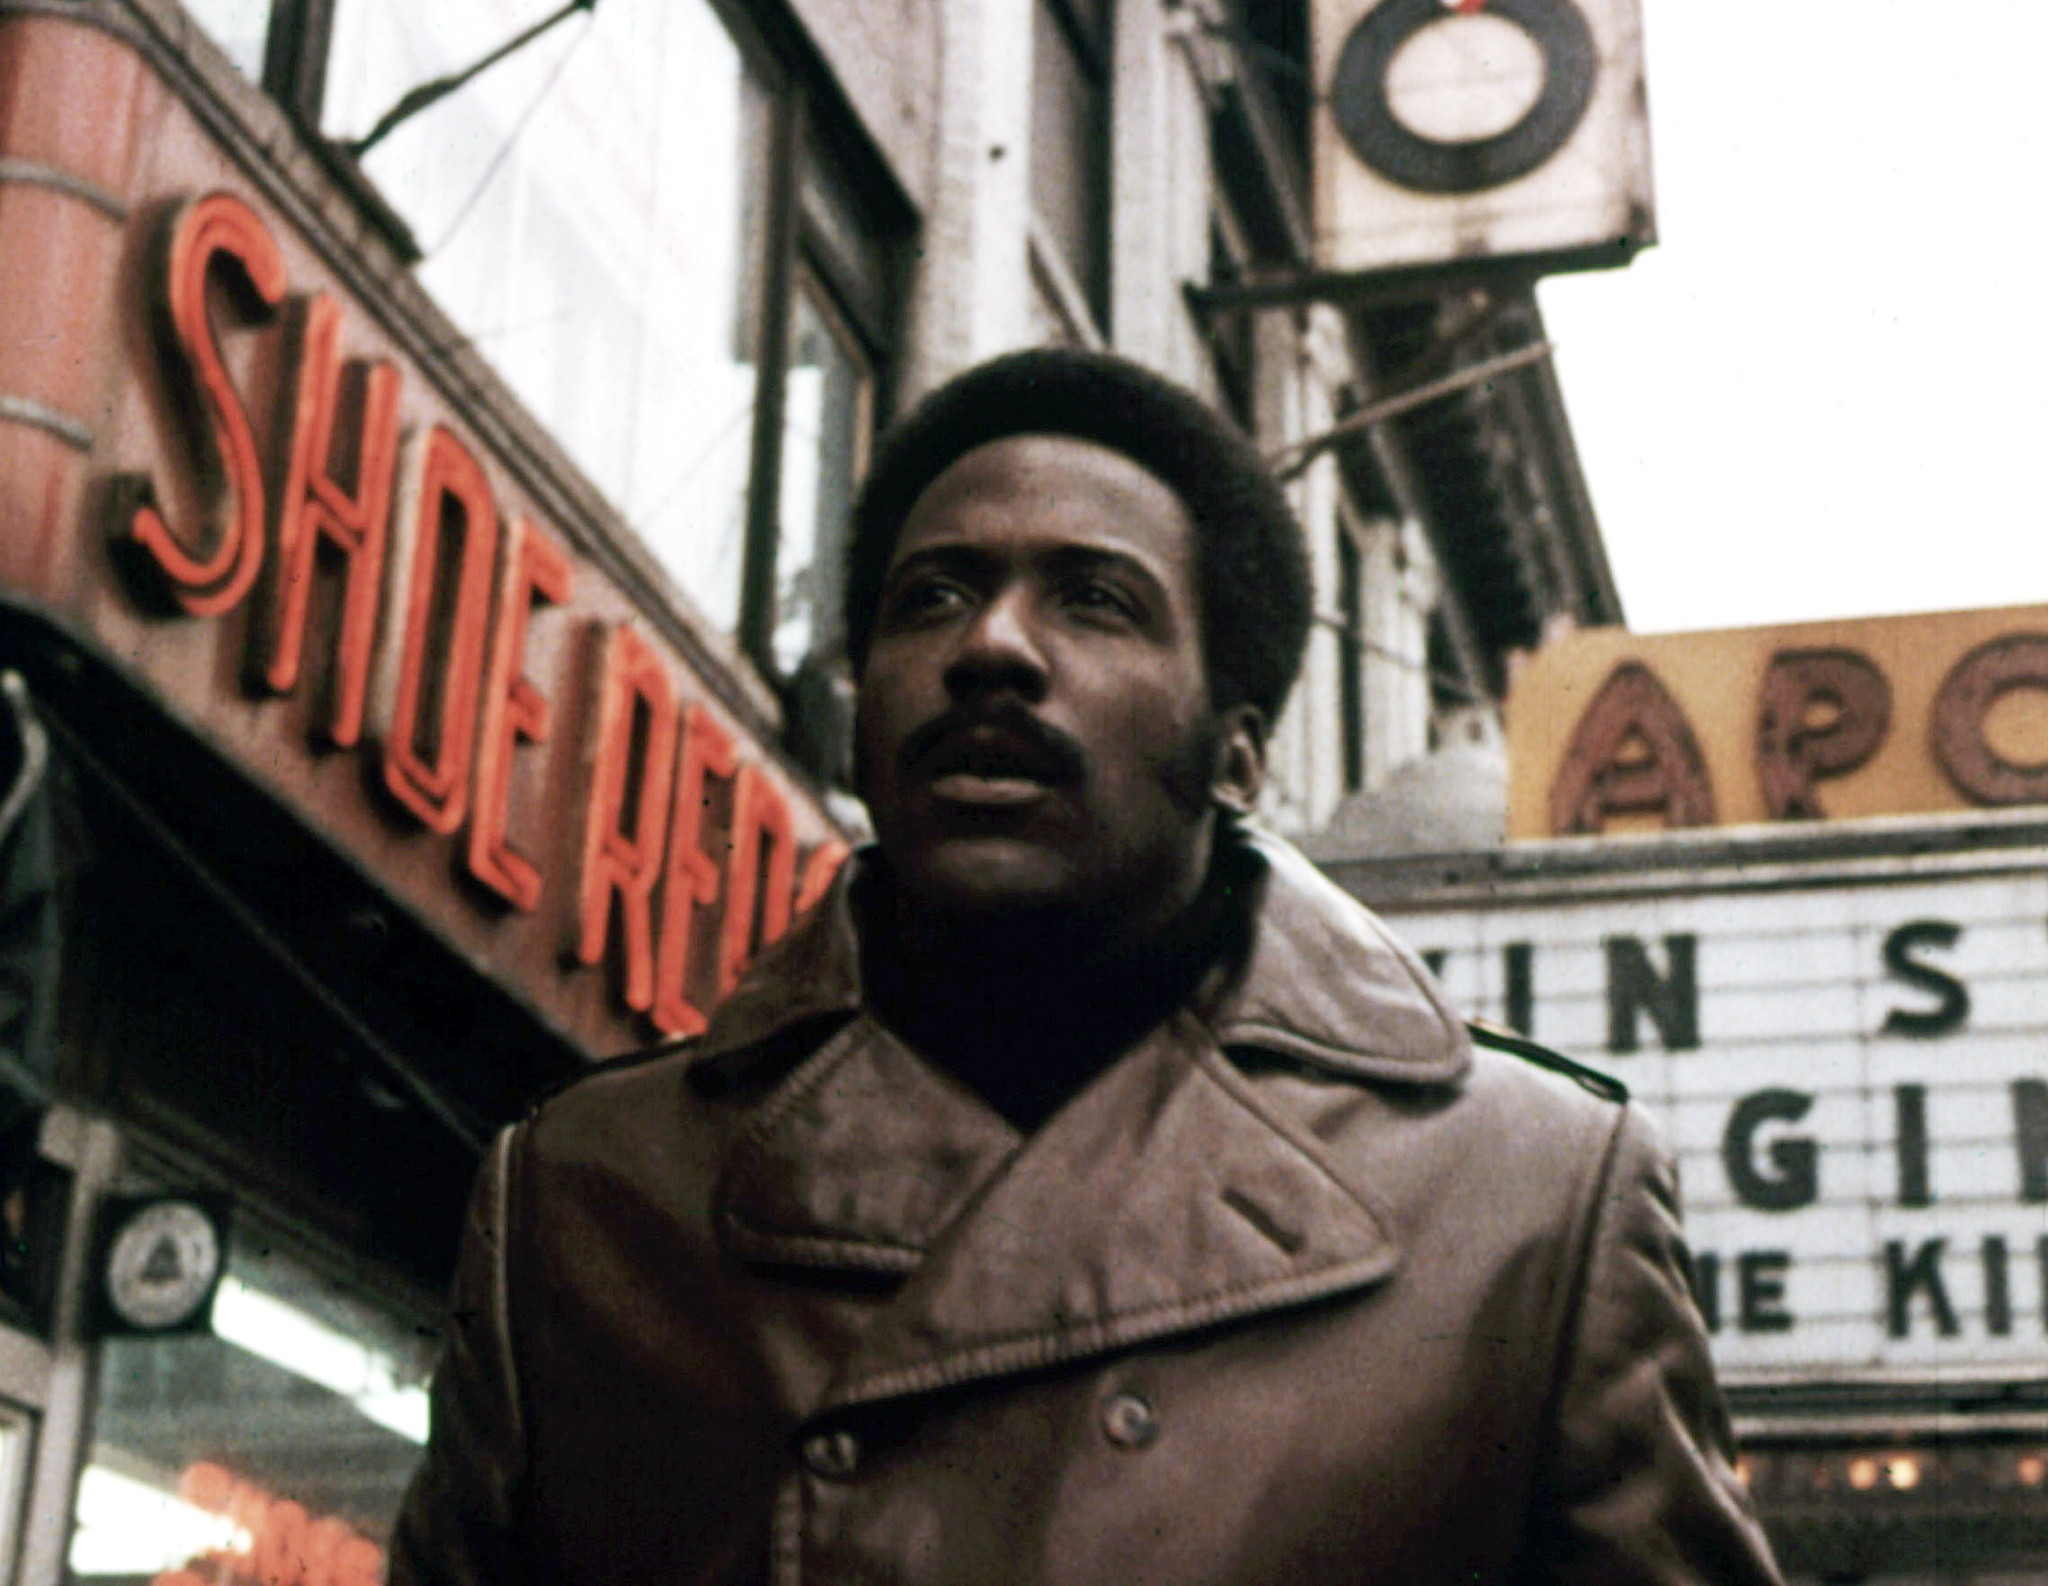 Apollo Theater to screen 'Shaft' with live score performance, half-priced tickets for Harlem residents